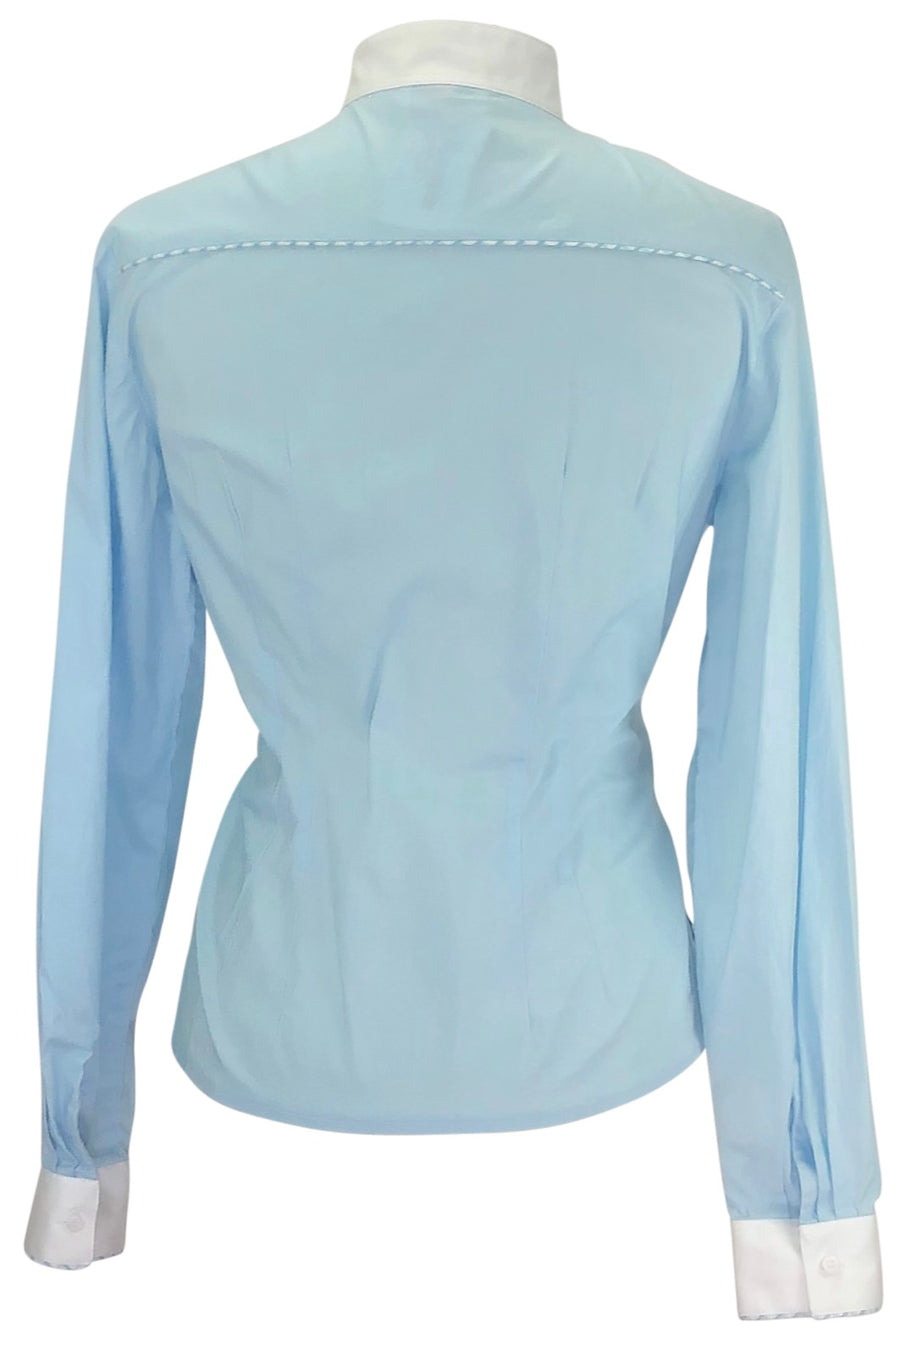 Back of Sarm Hippique Competition Shirt in Baby Blue